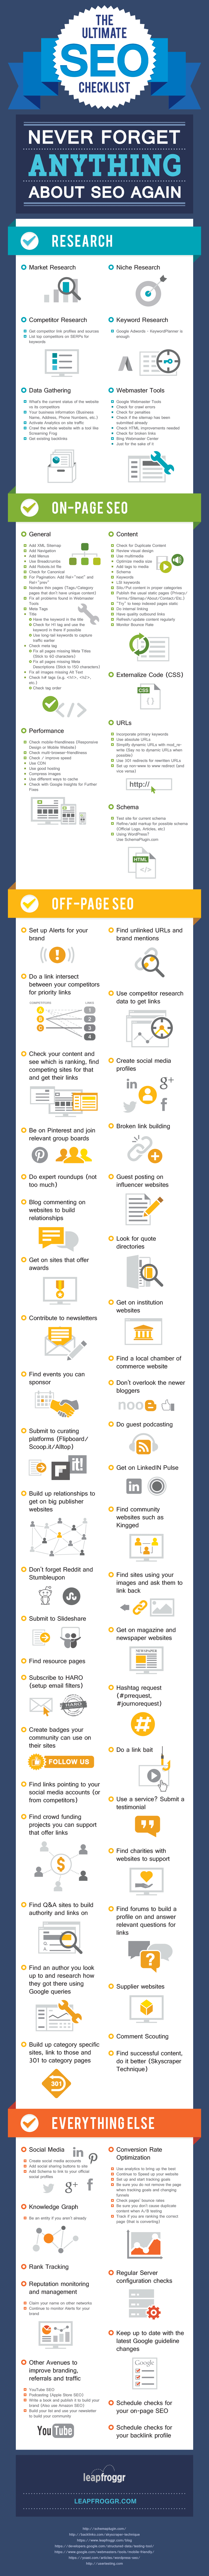 Infographic: Search Engine Optimization Checklist